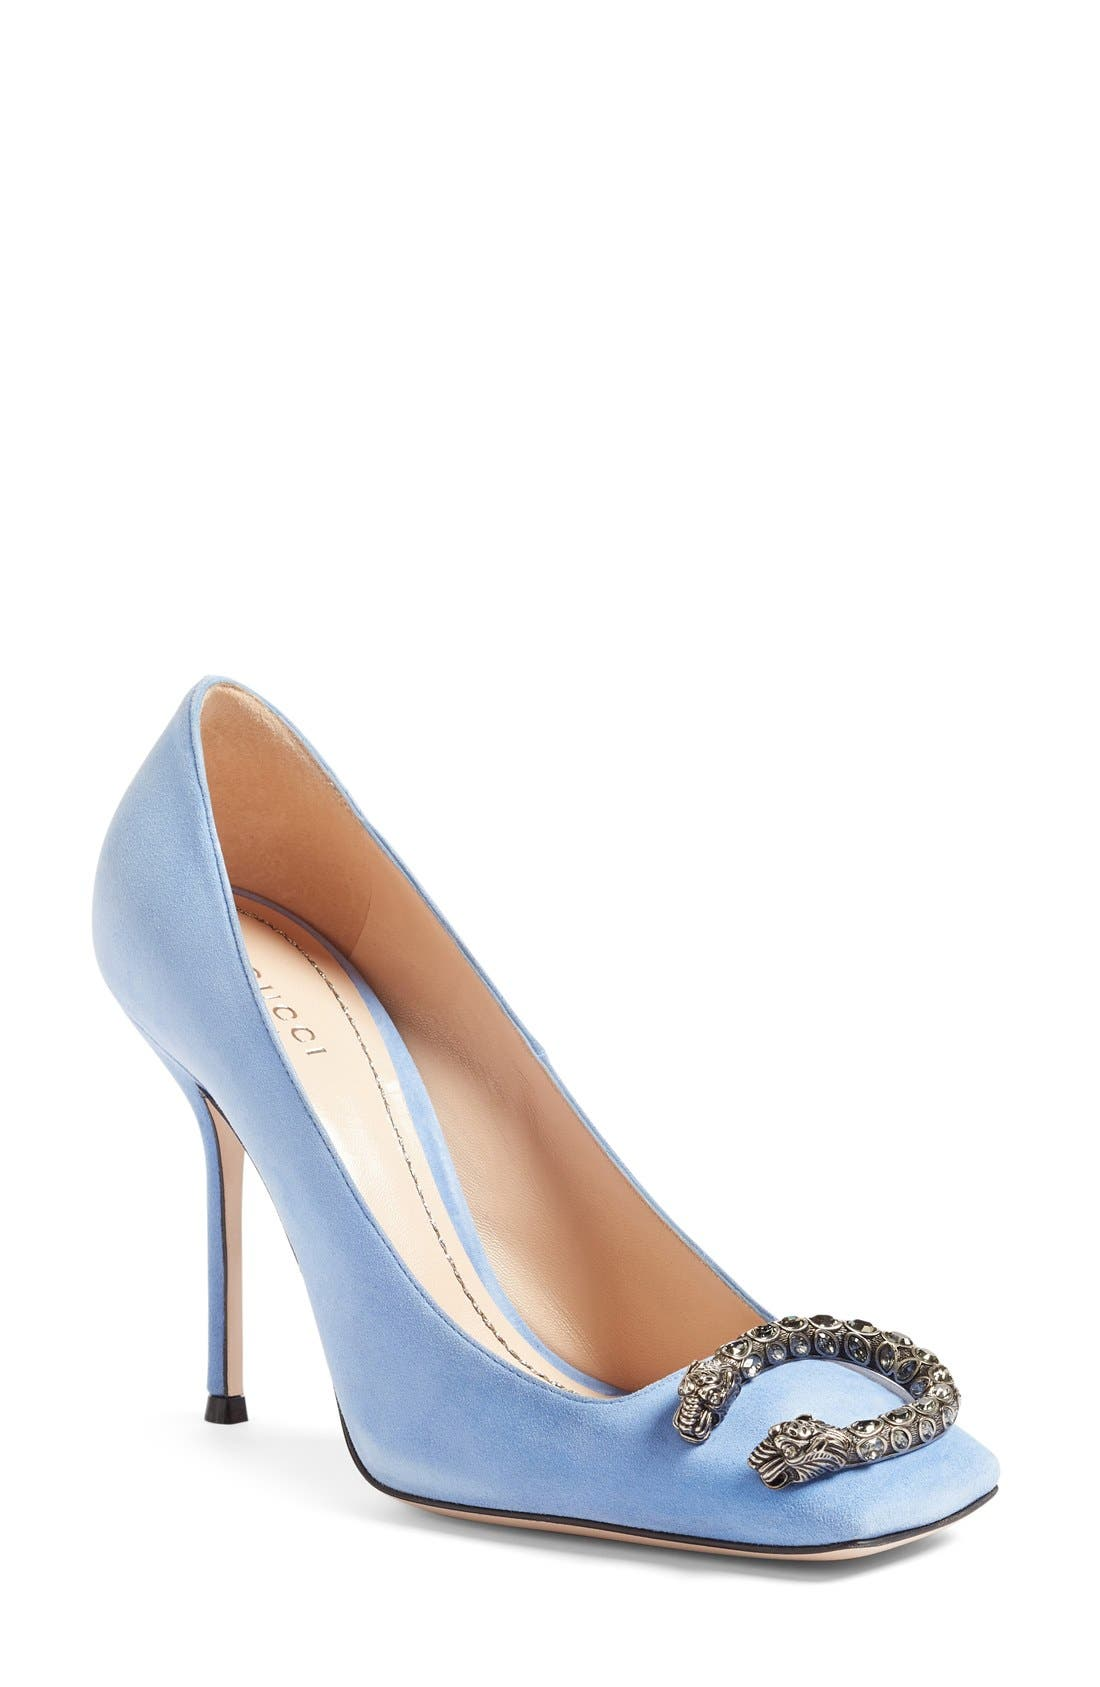 Main Image - Gucci Dionysus Embellished Square Toe Pump (Women)